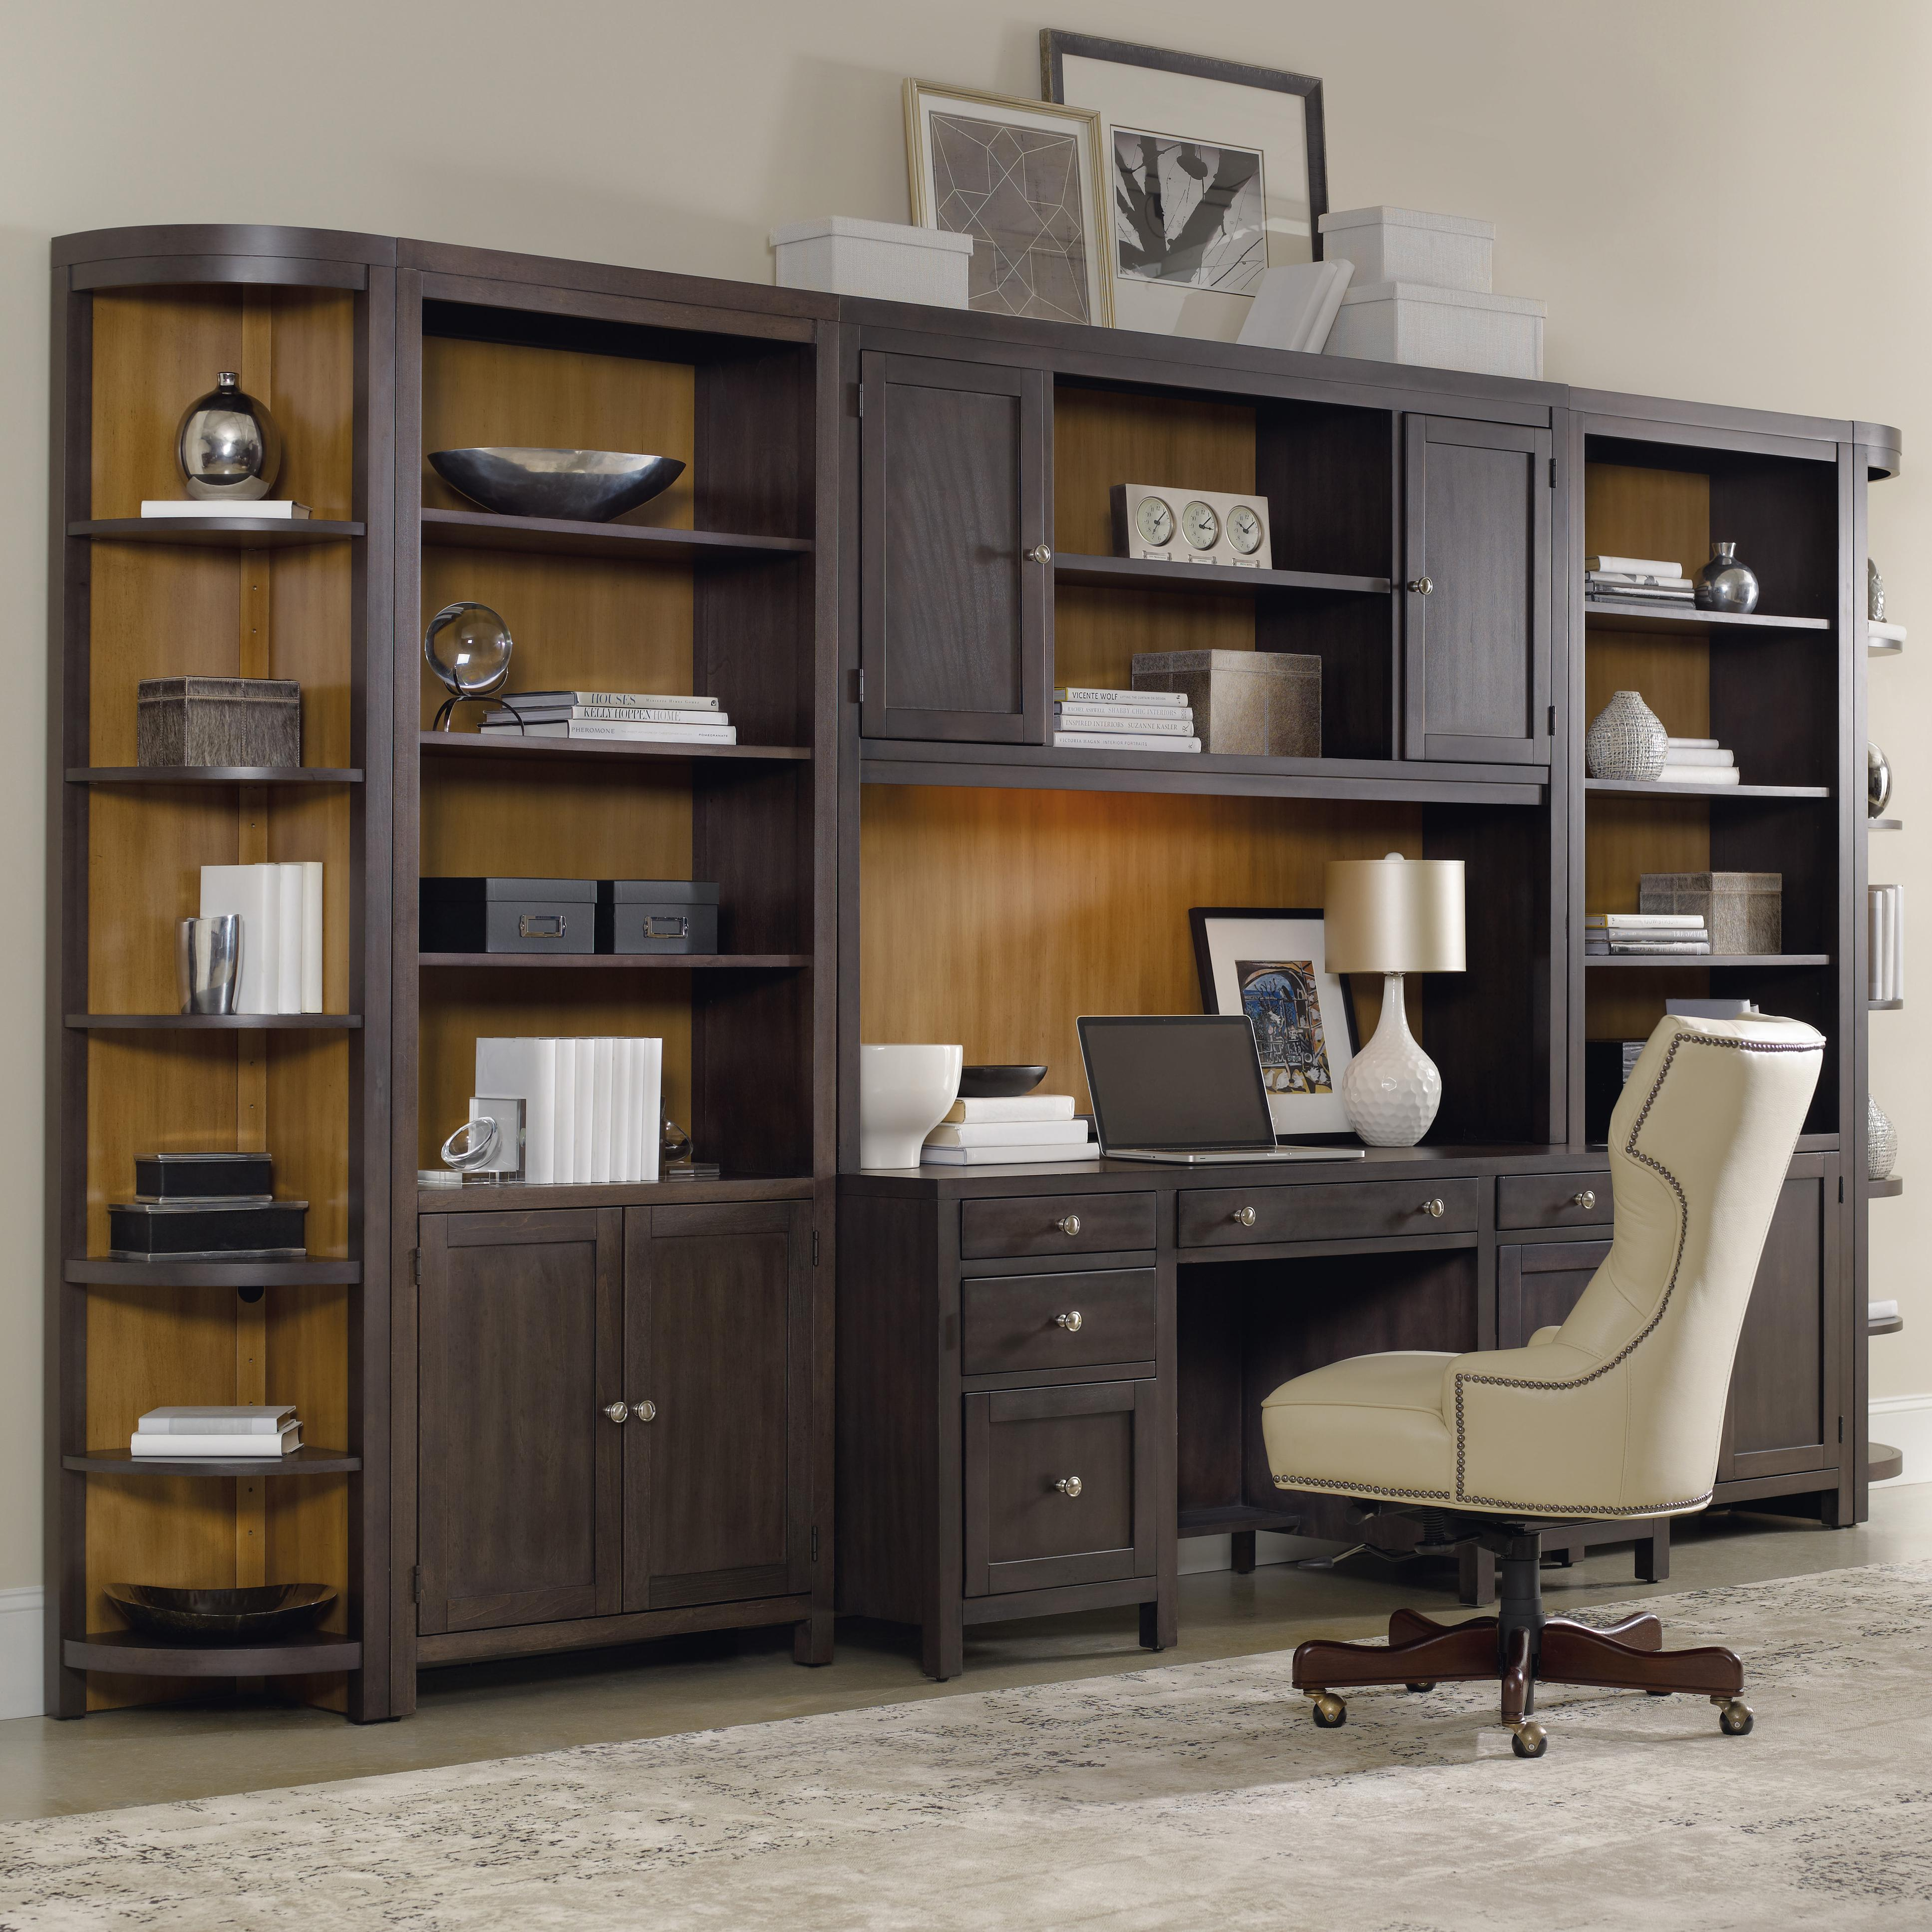 Terrific South Park Home Office Wall Unit With Computer Credenza By Hooker Furniture At Dunk Bright Furniture Home Interior And Landscaping Spoatsignezvosmurscom